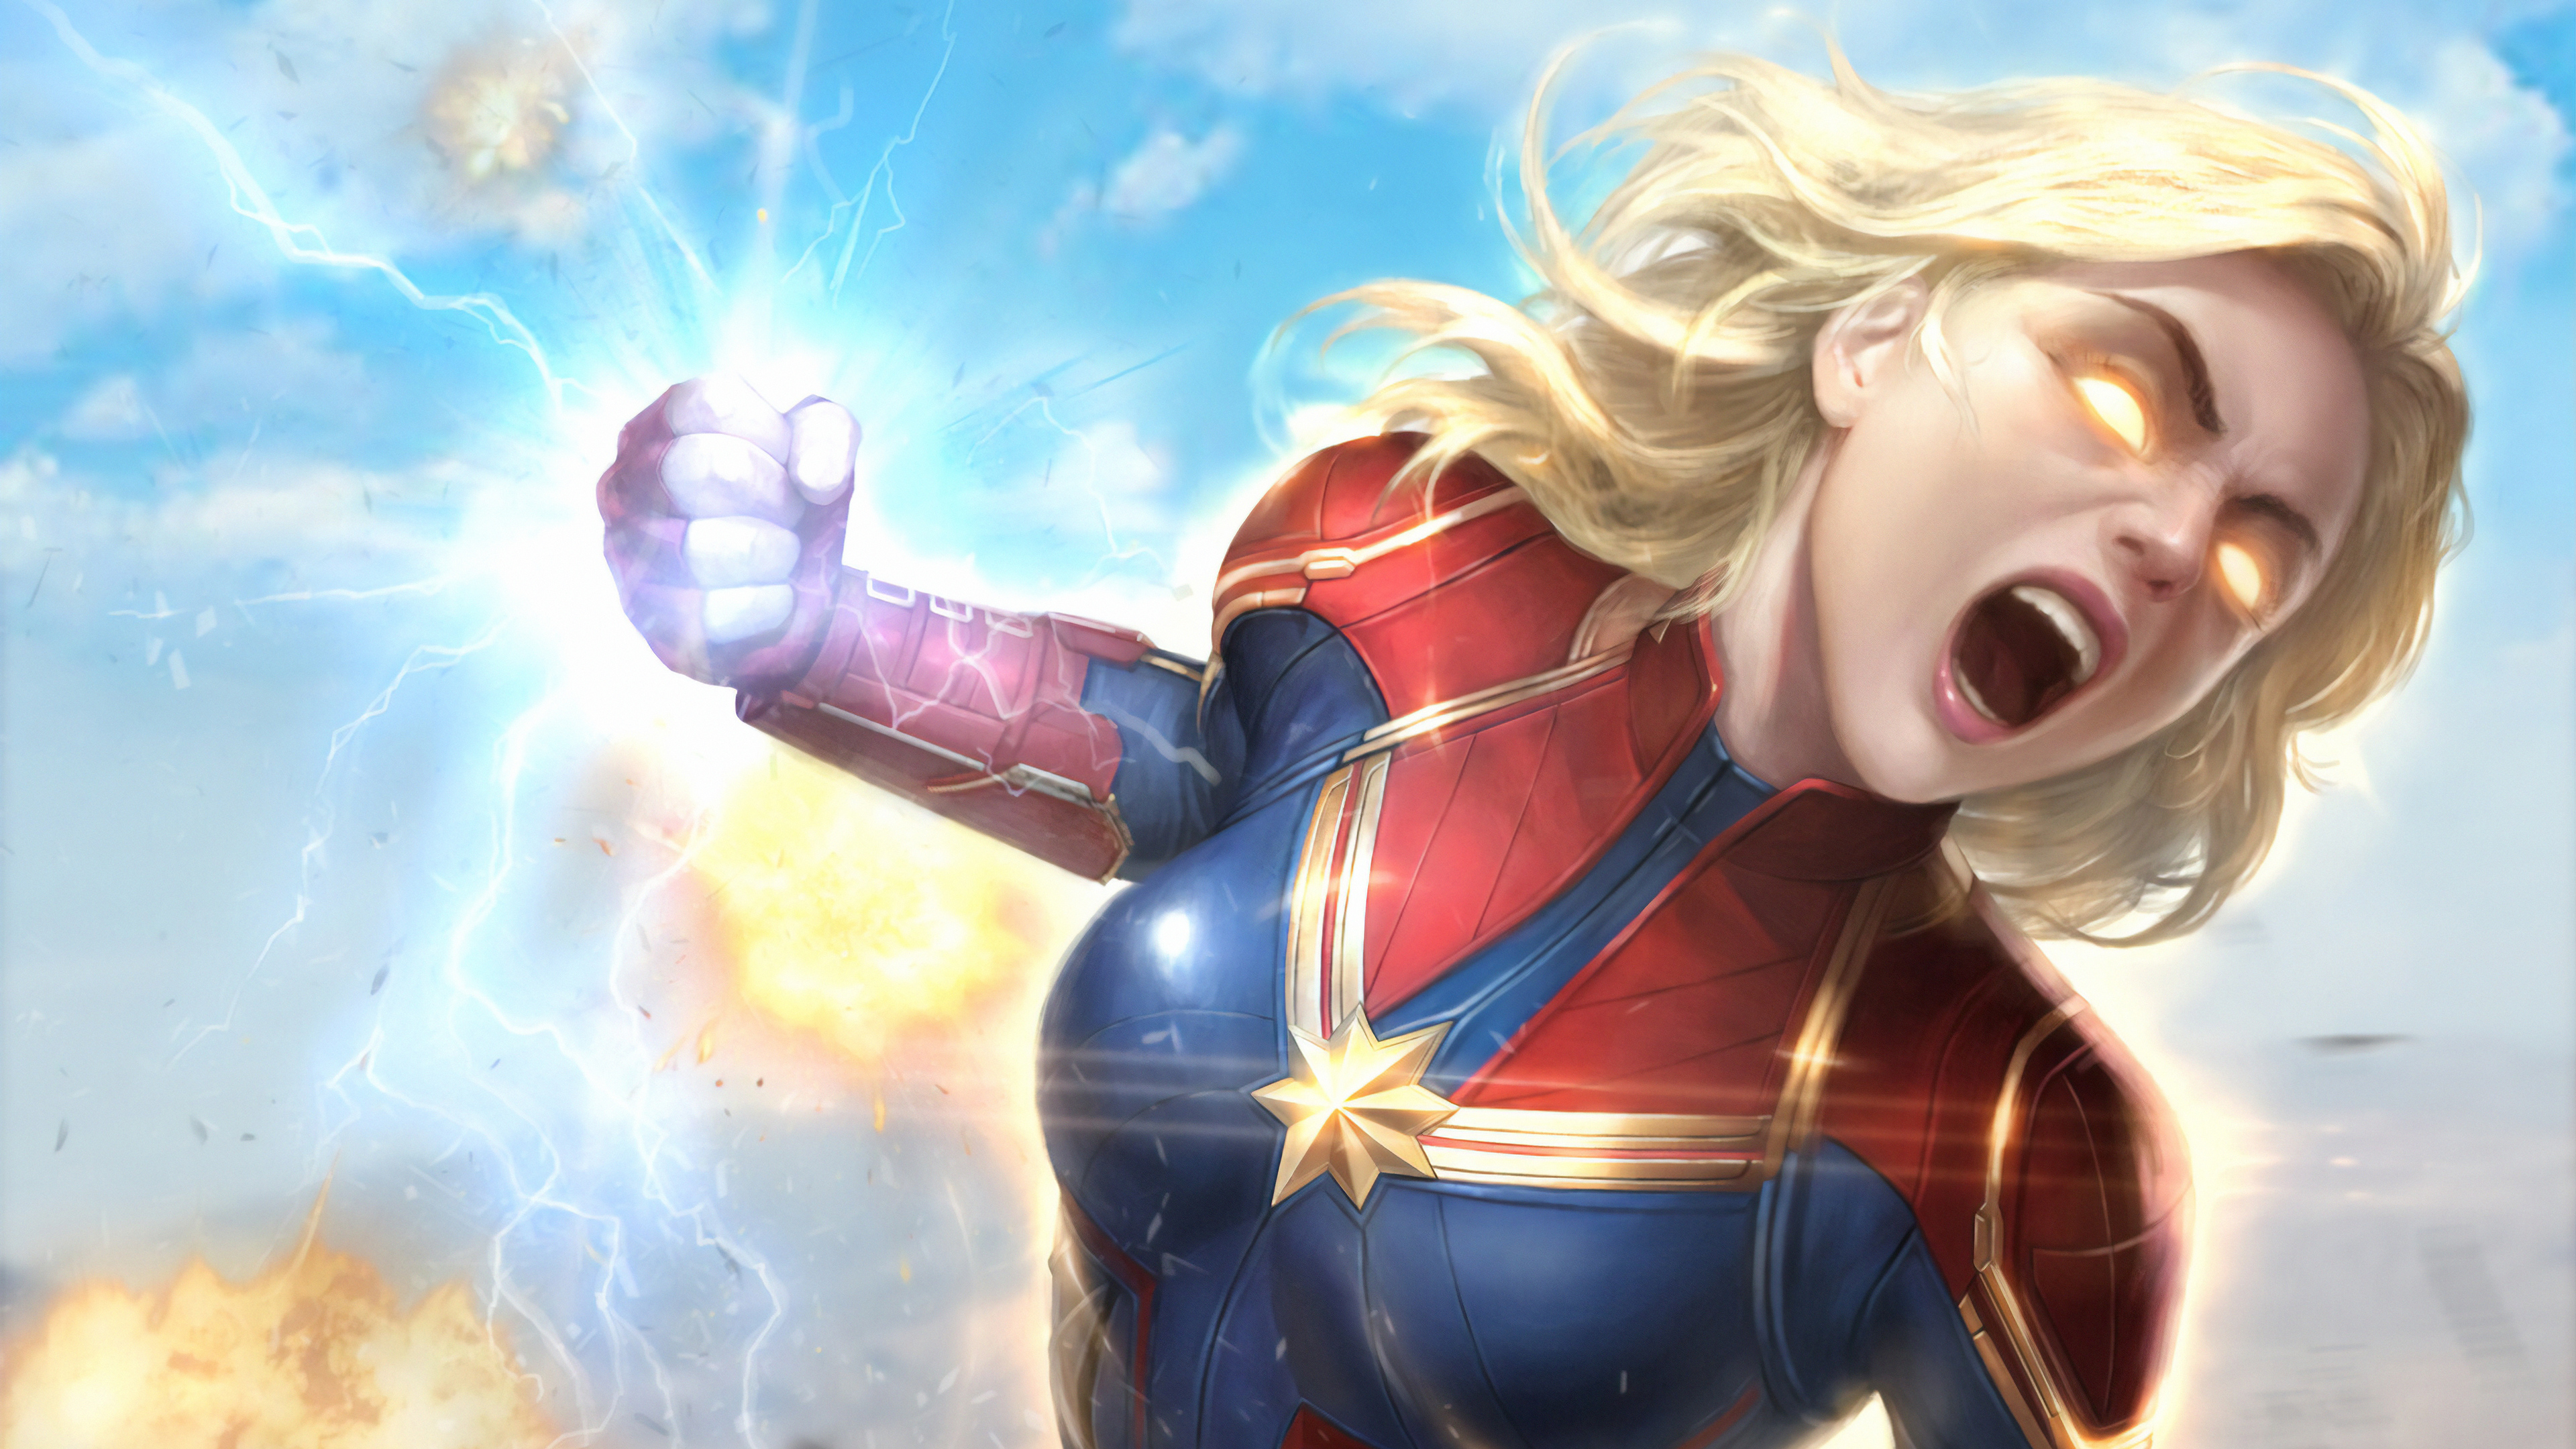 captain marvel newarts 1570394487 - Captain Marvel Newarts - superheroes wallpapers, hd-wallpapers, captain marvel wallpapers, artwork wallpapers, artstation wallpapers, art wallpapers, 4k-wallpapers